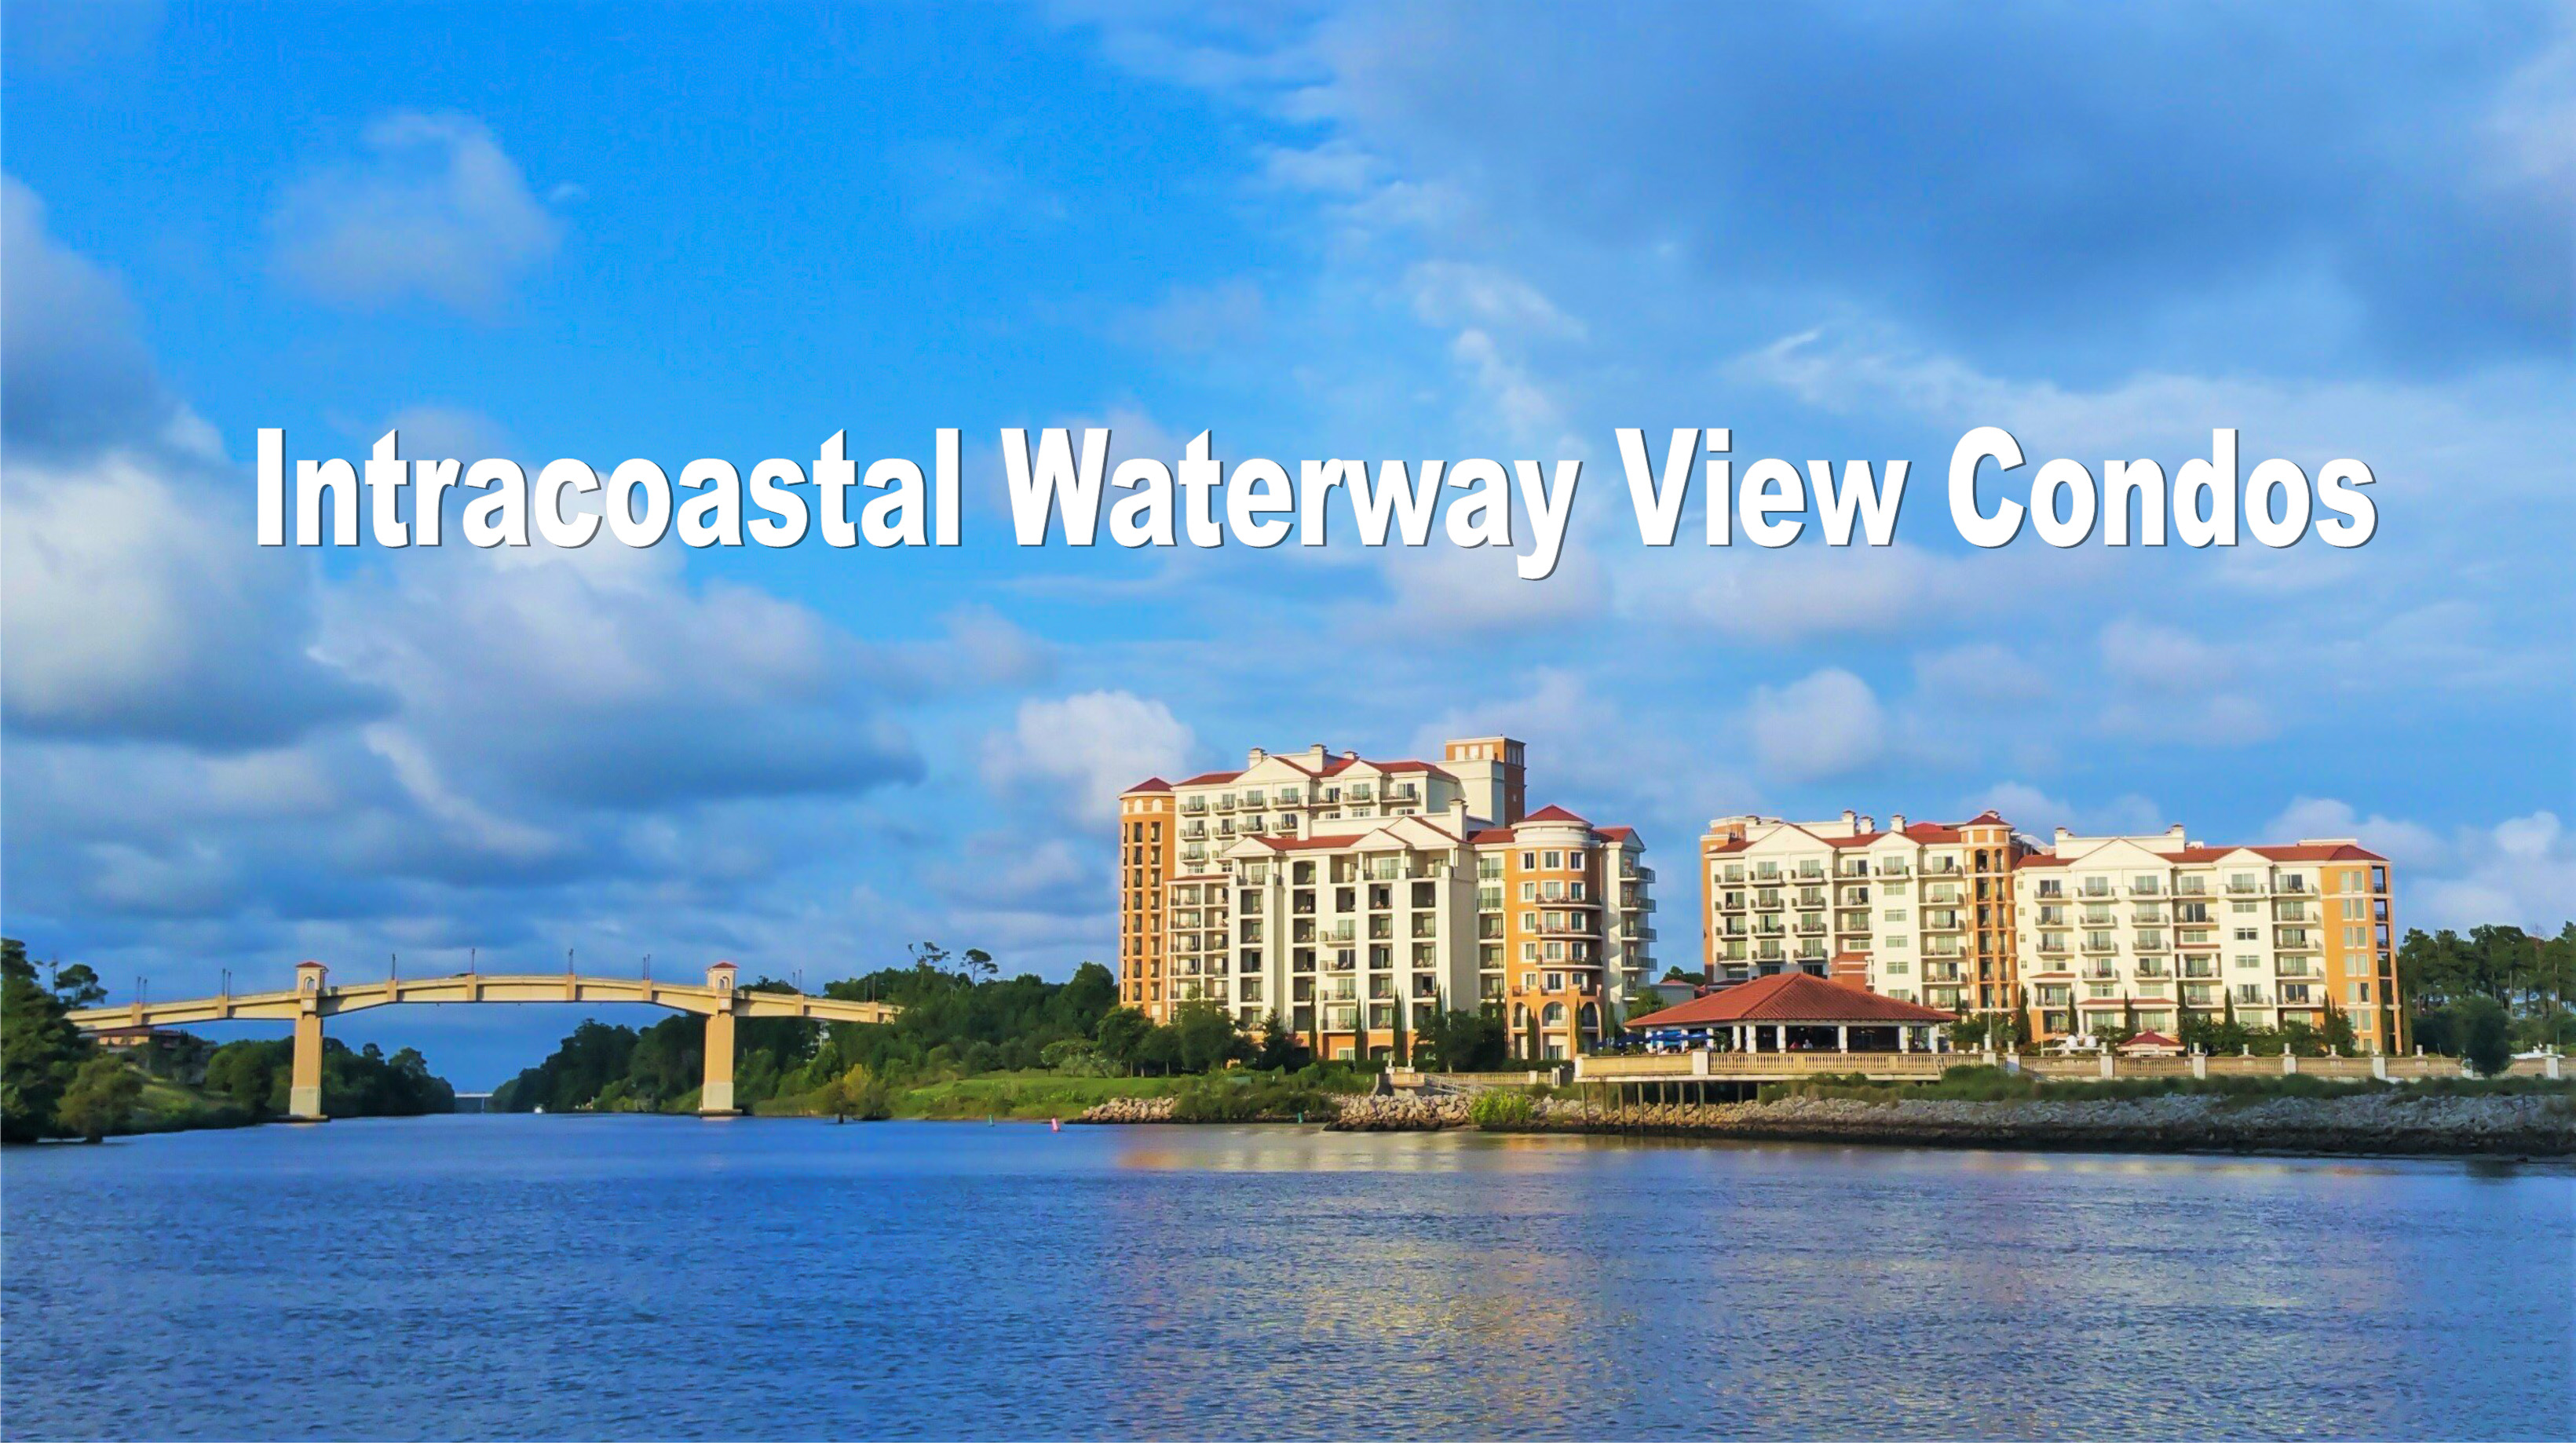 Intracoastal Waterway View Condos For Sale | Myrtle Beach Area